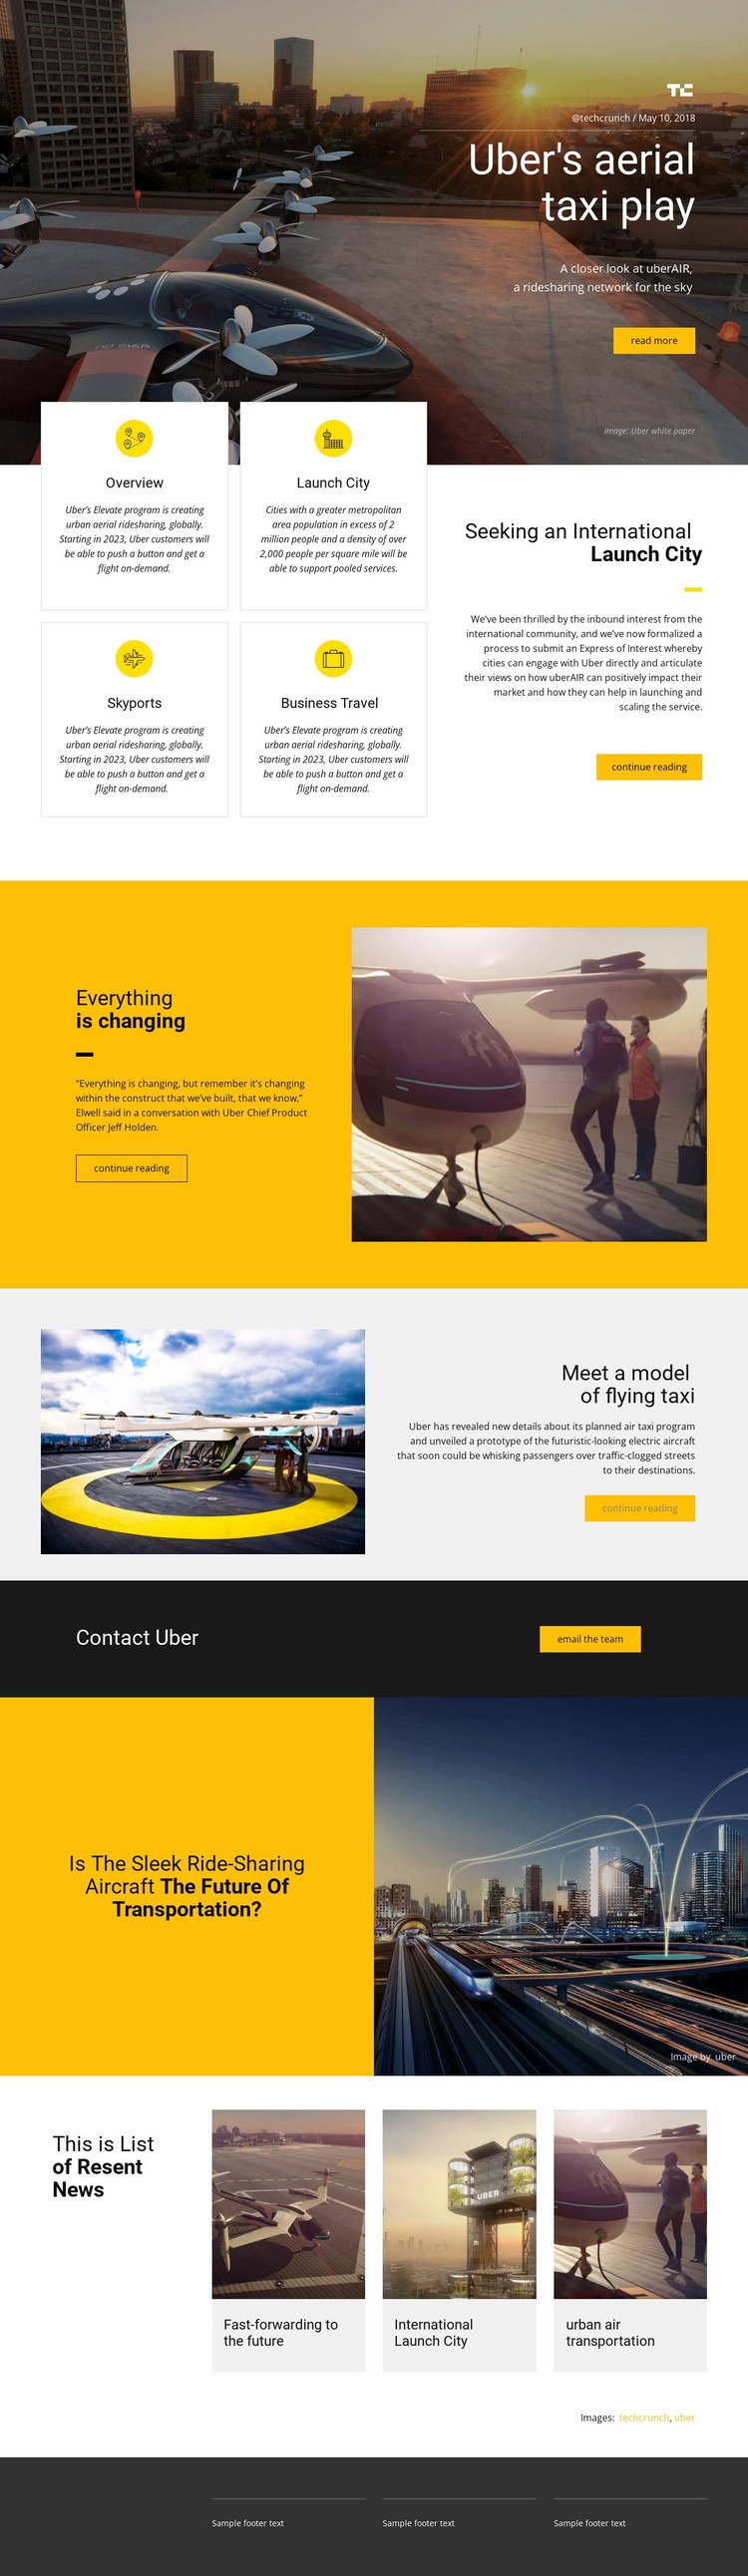 Uber's Aerial Taxi Play Static Site Generator